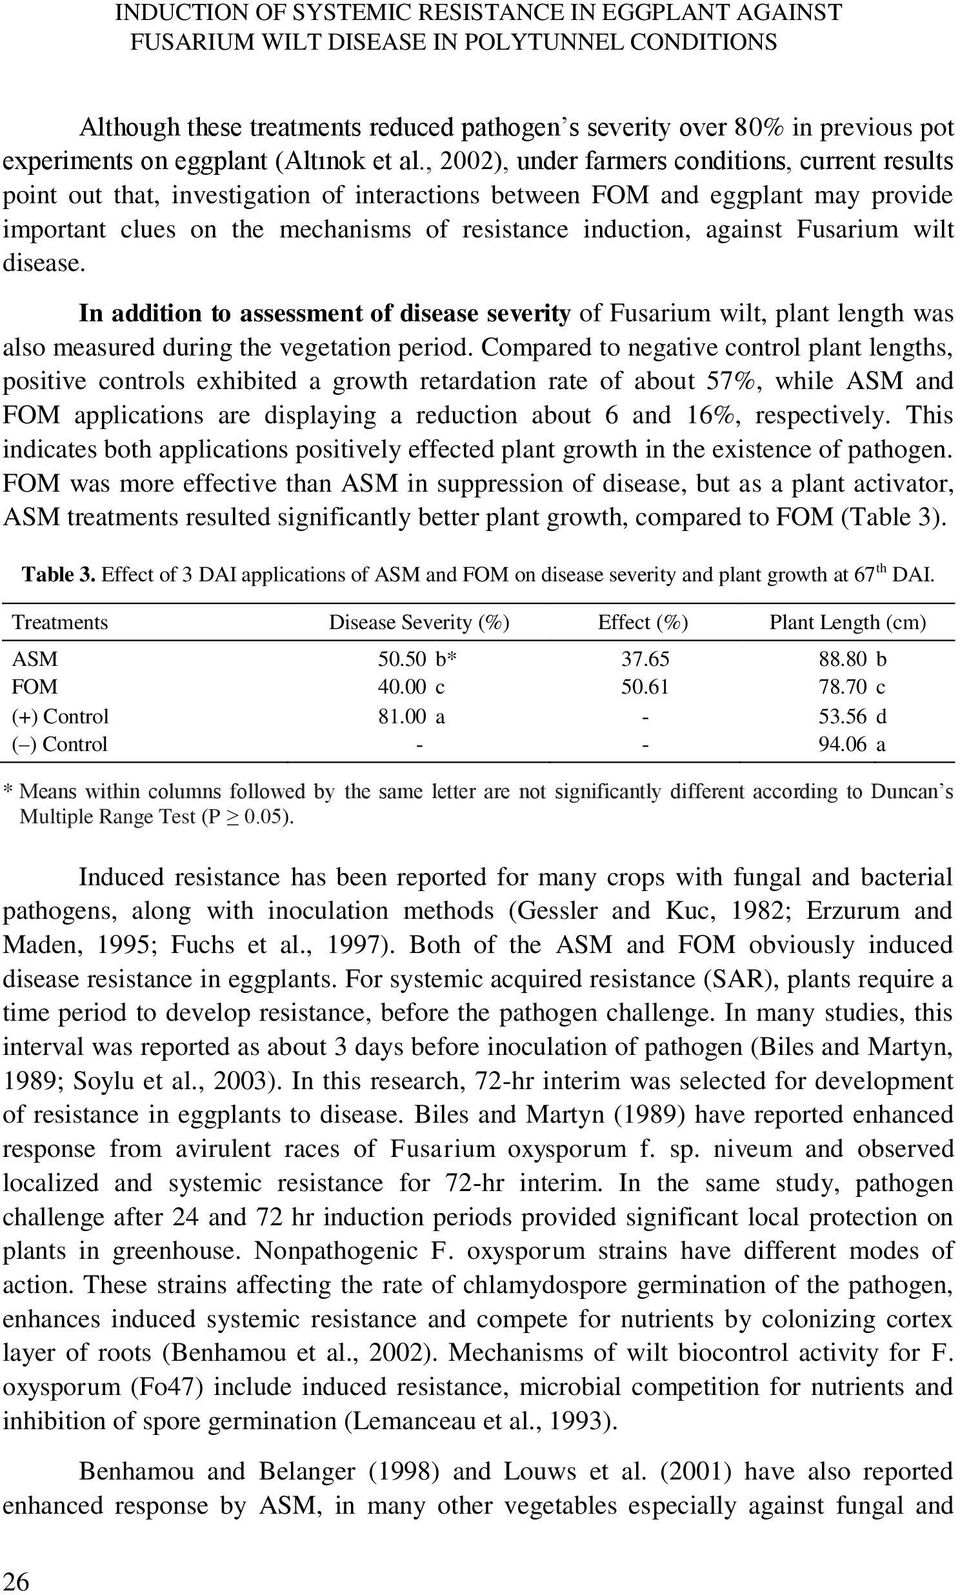 , 2002), under farmers conditions, current results point out that, investigation of interactions between FOM and eggplant may provide important clues on the mechanisms of resistance induction,